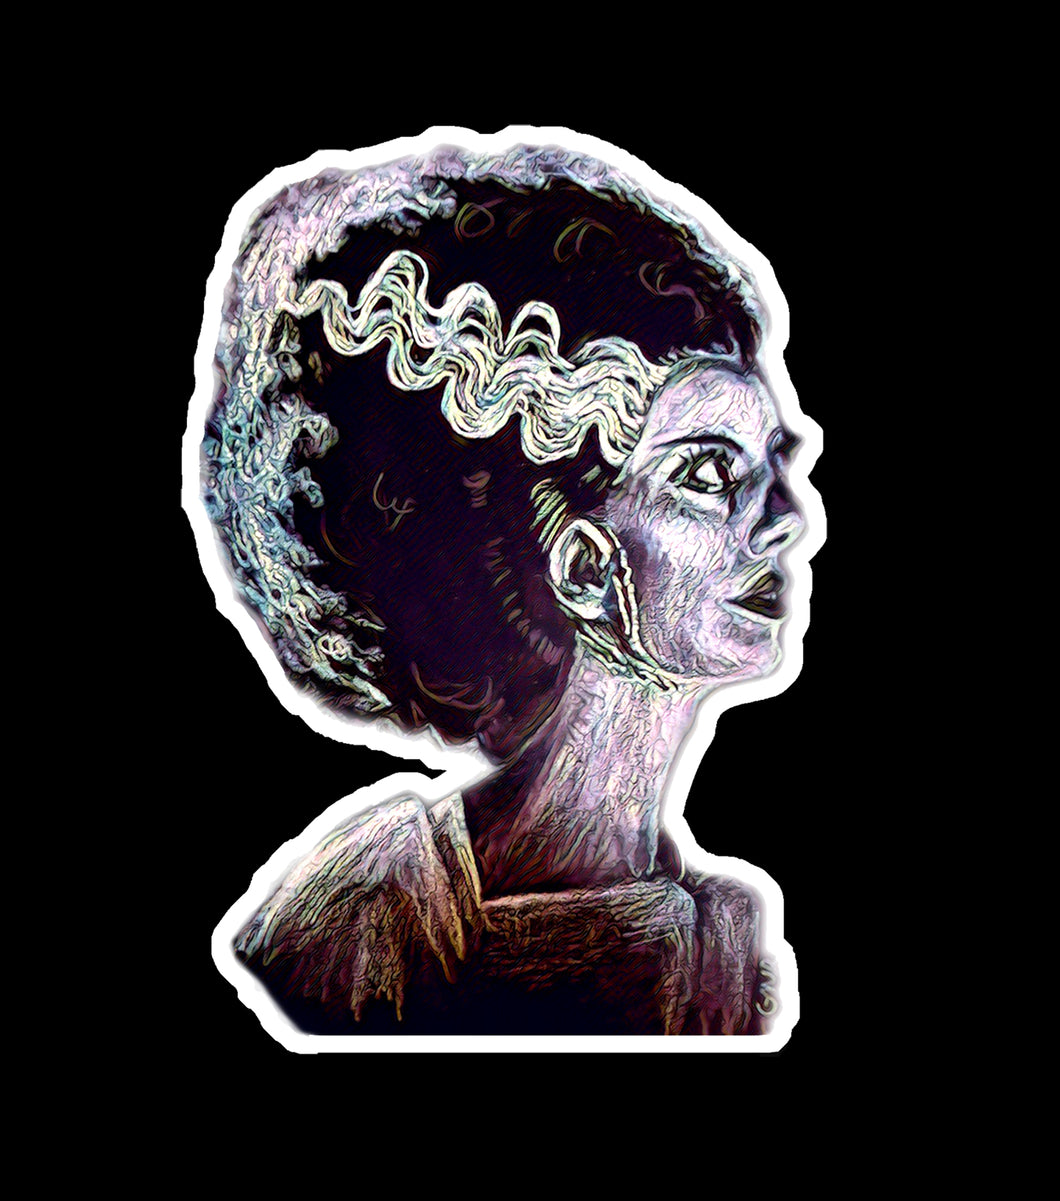 Bride of Frankenstein Sticker, goth, classic horror, water resistant